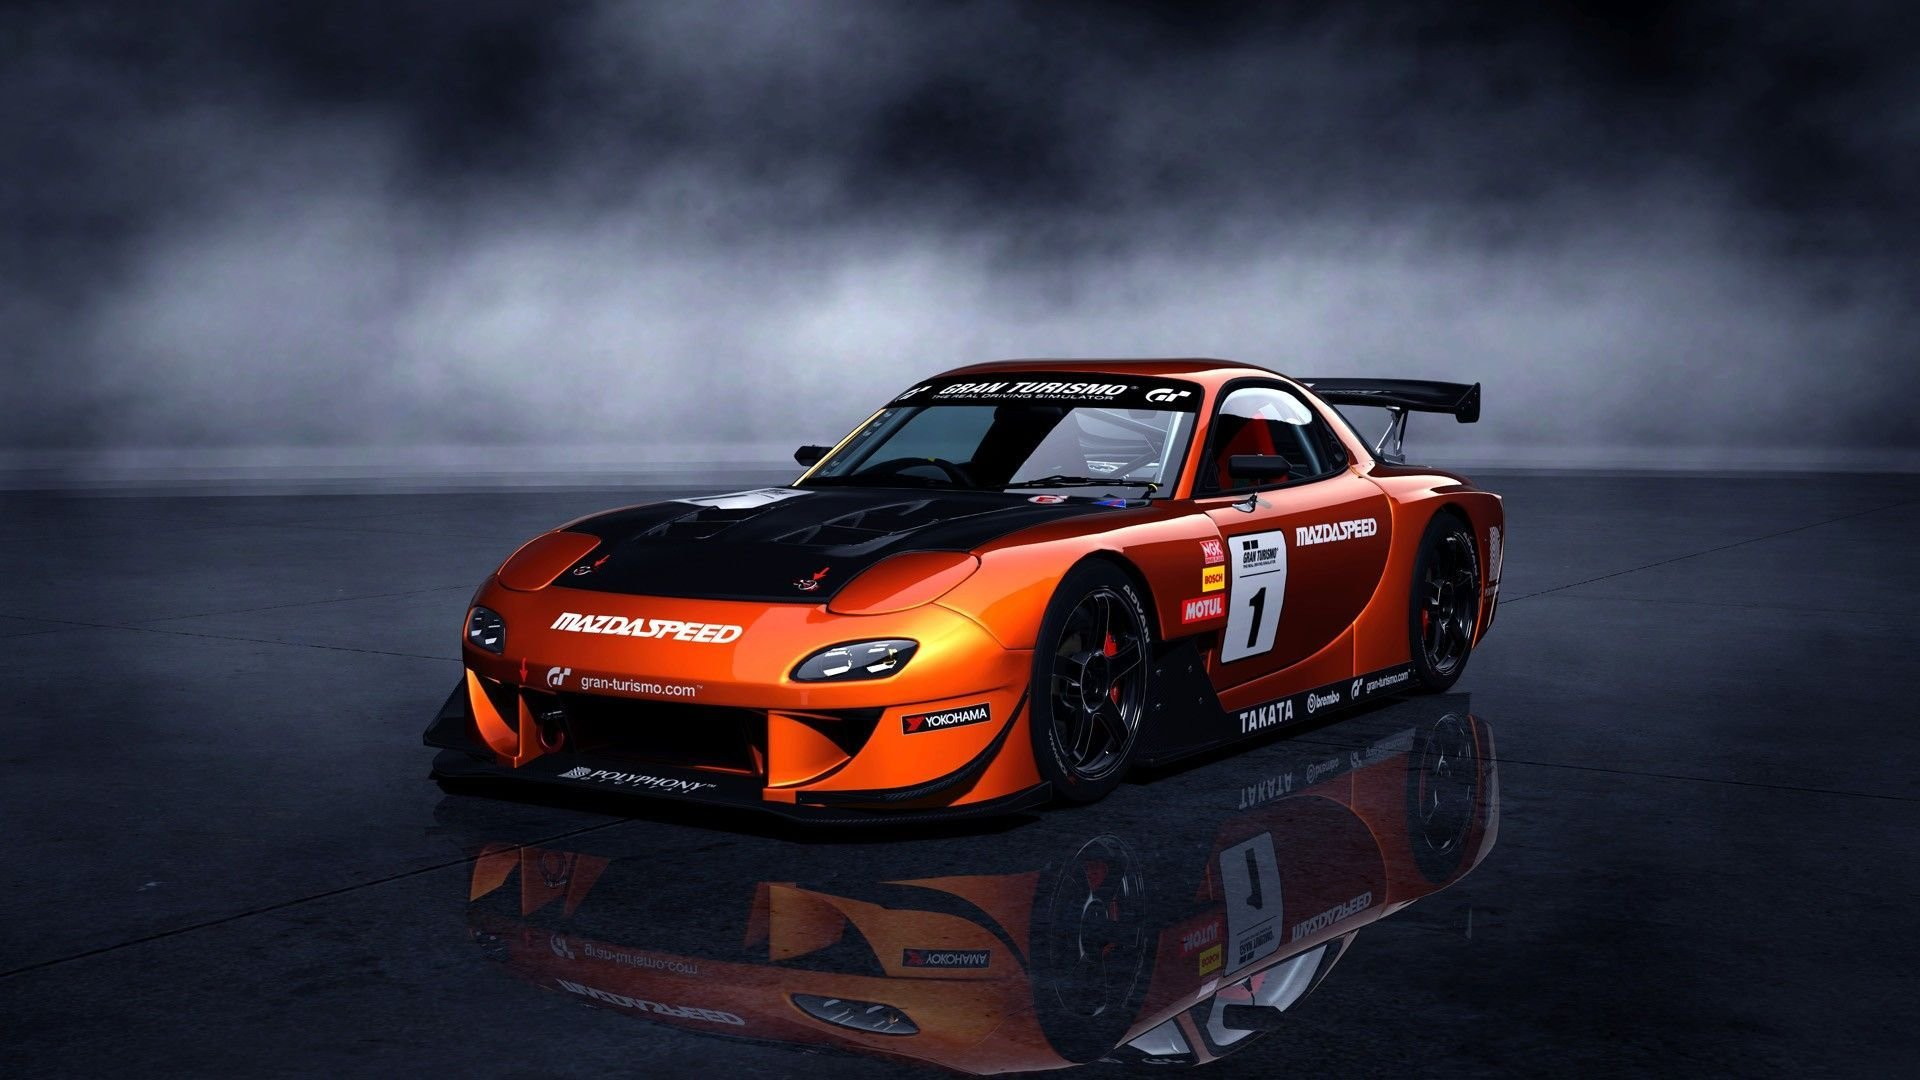 Latest Amazing Mazda Rx 7 Racing Car Wallpapers Desktop Forza Free Download